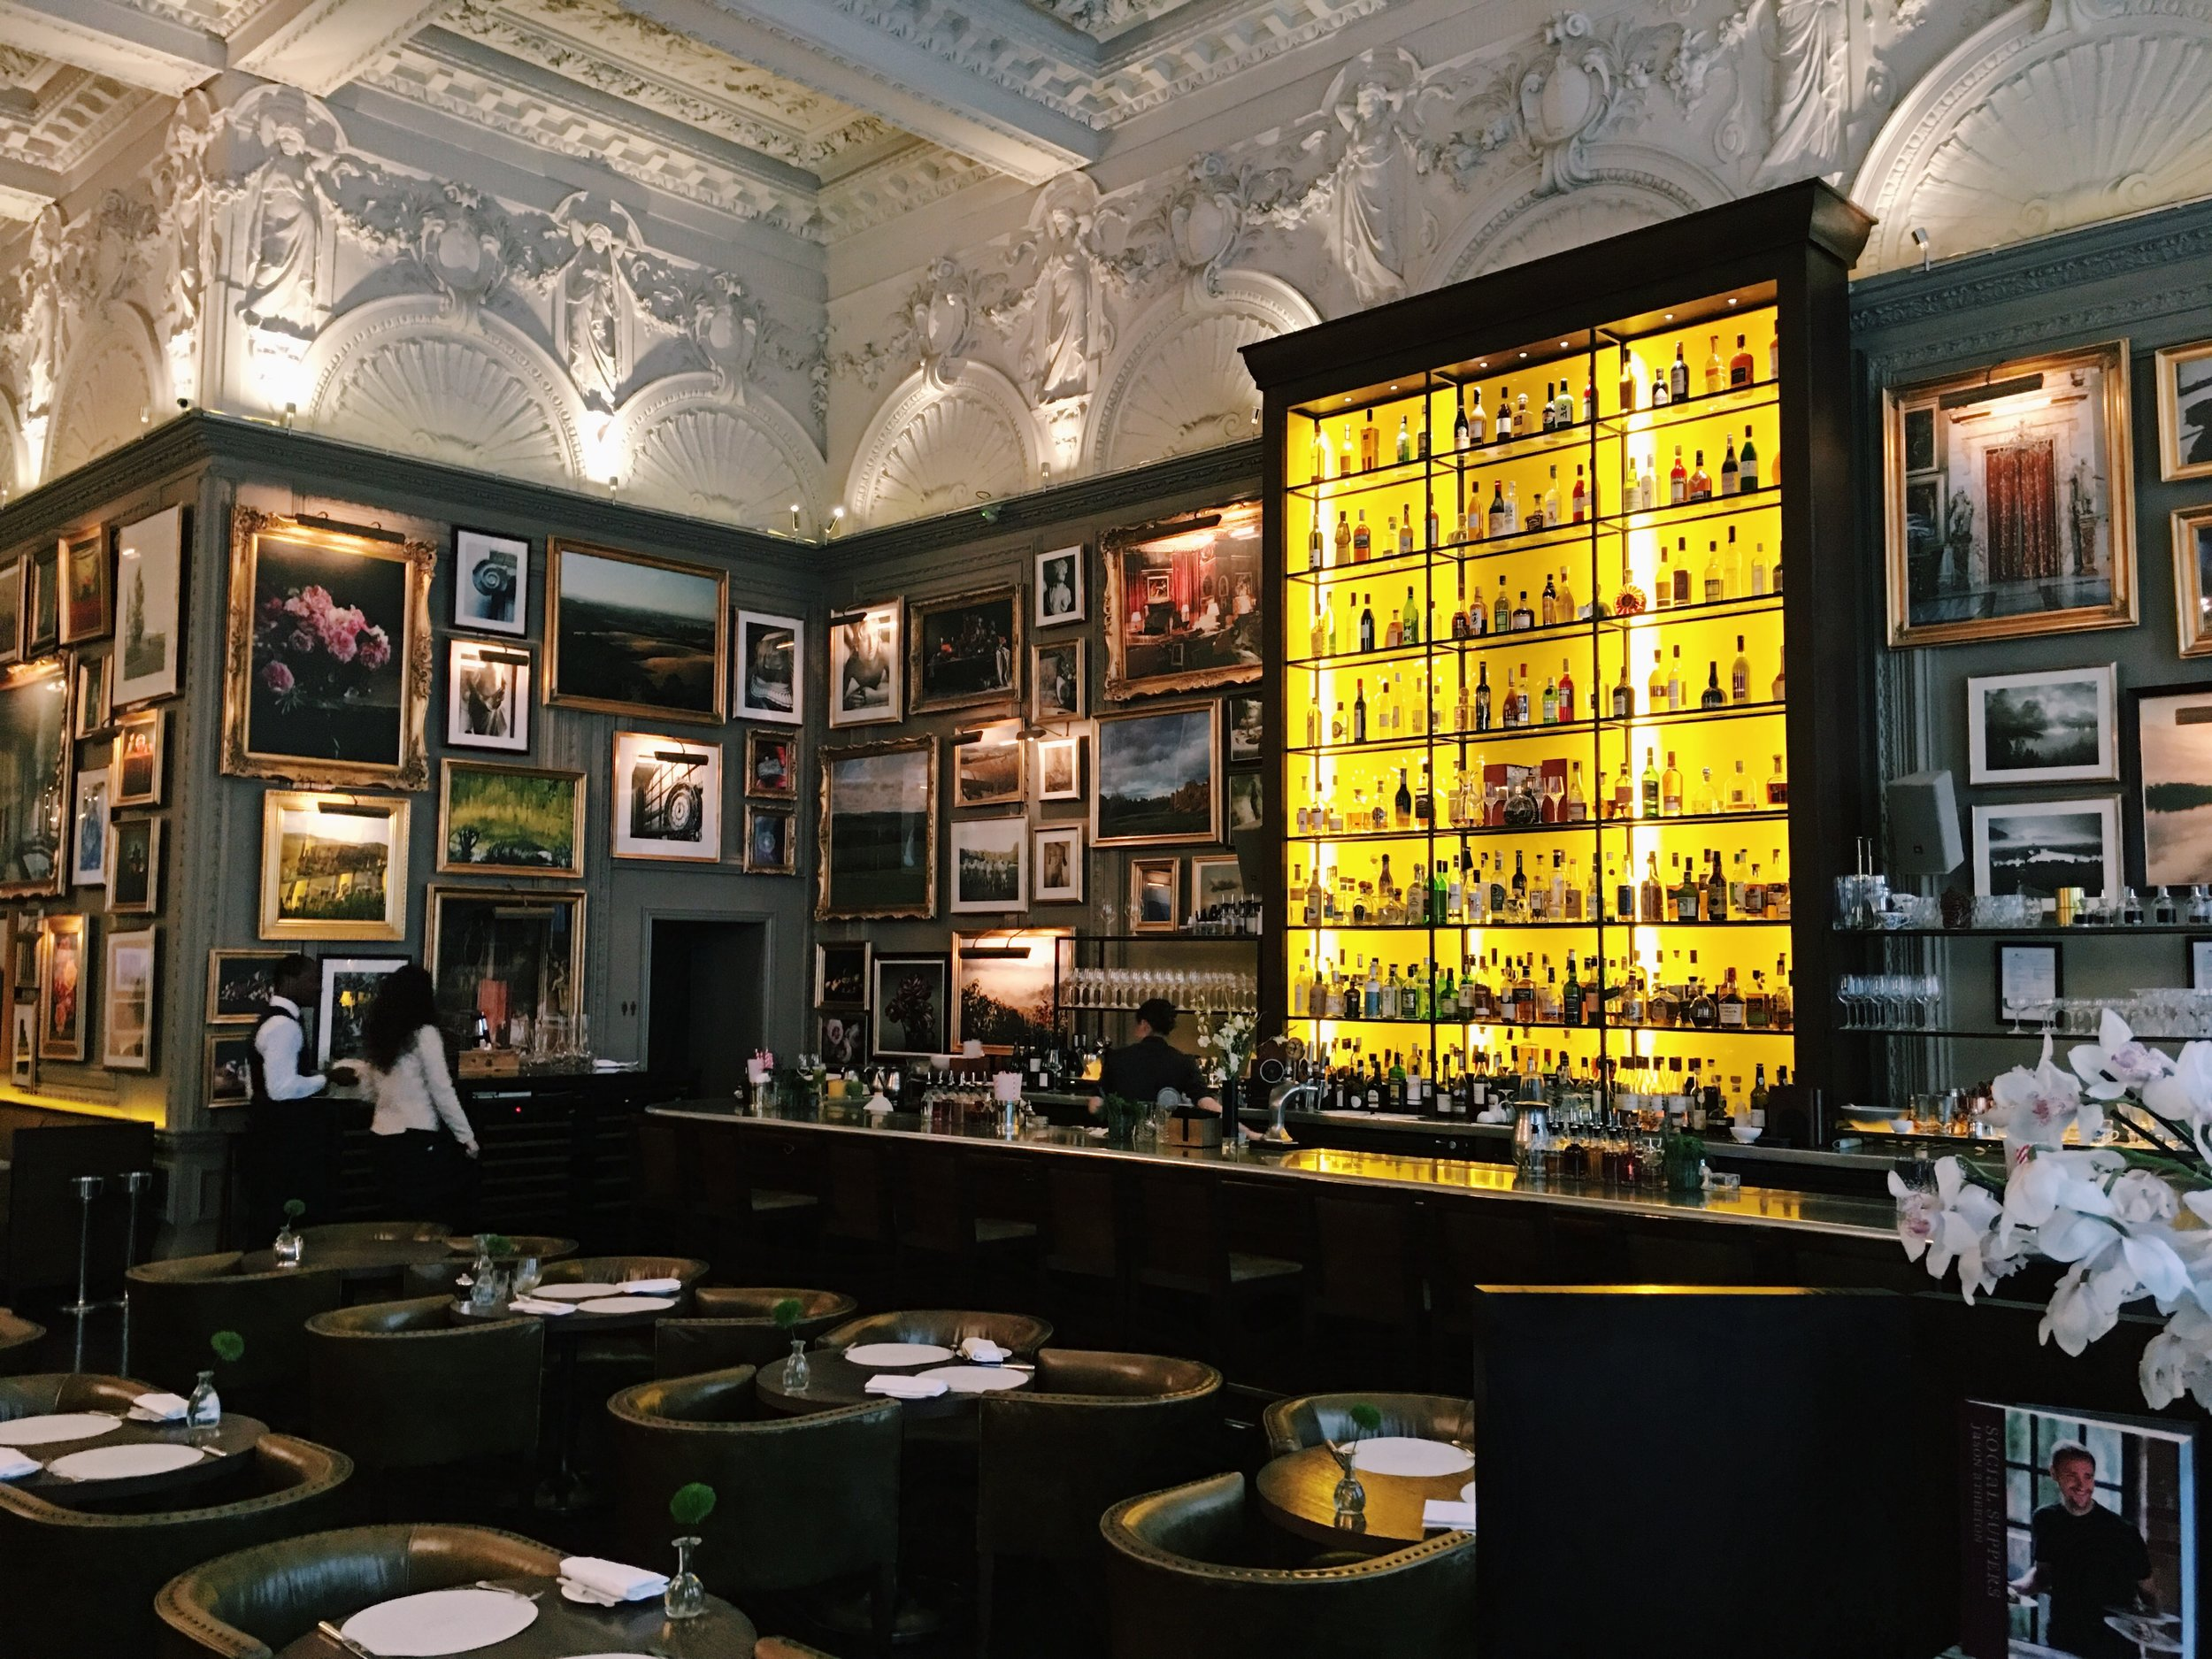 The bar at Berners Tavern, London